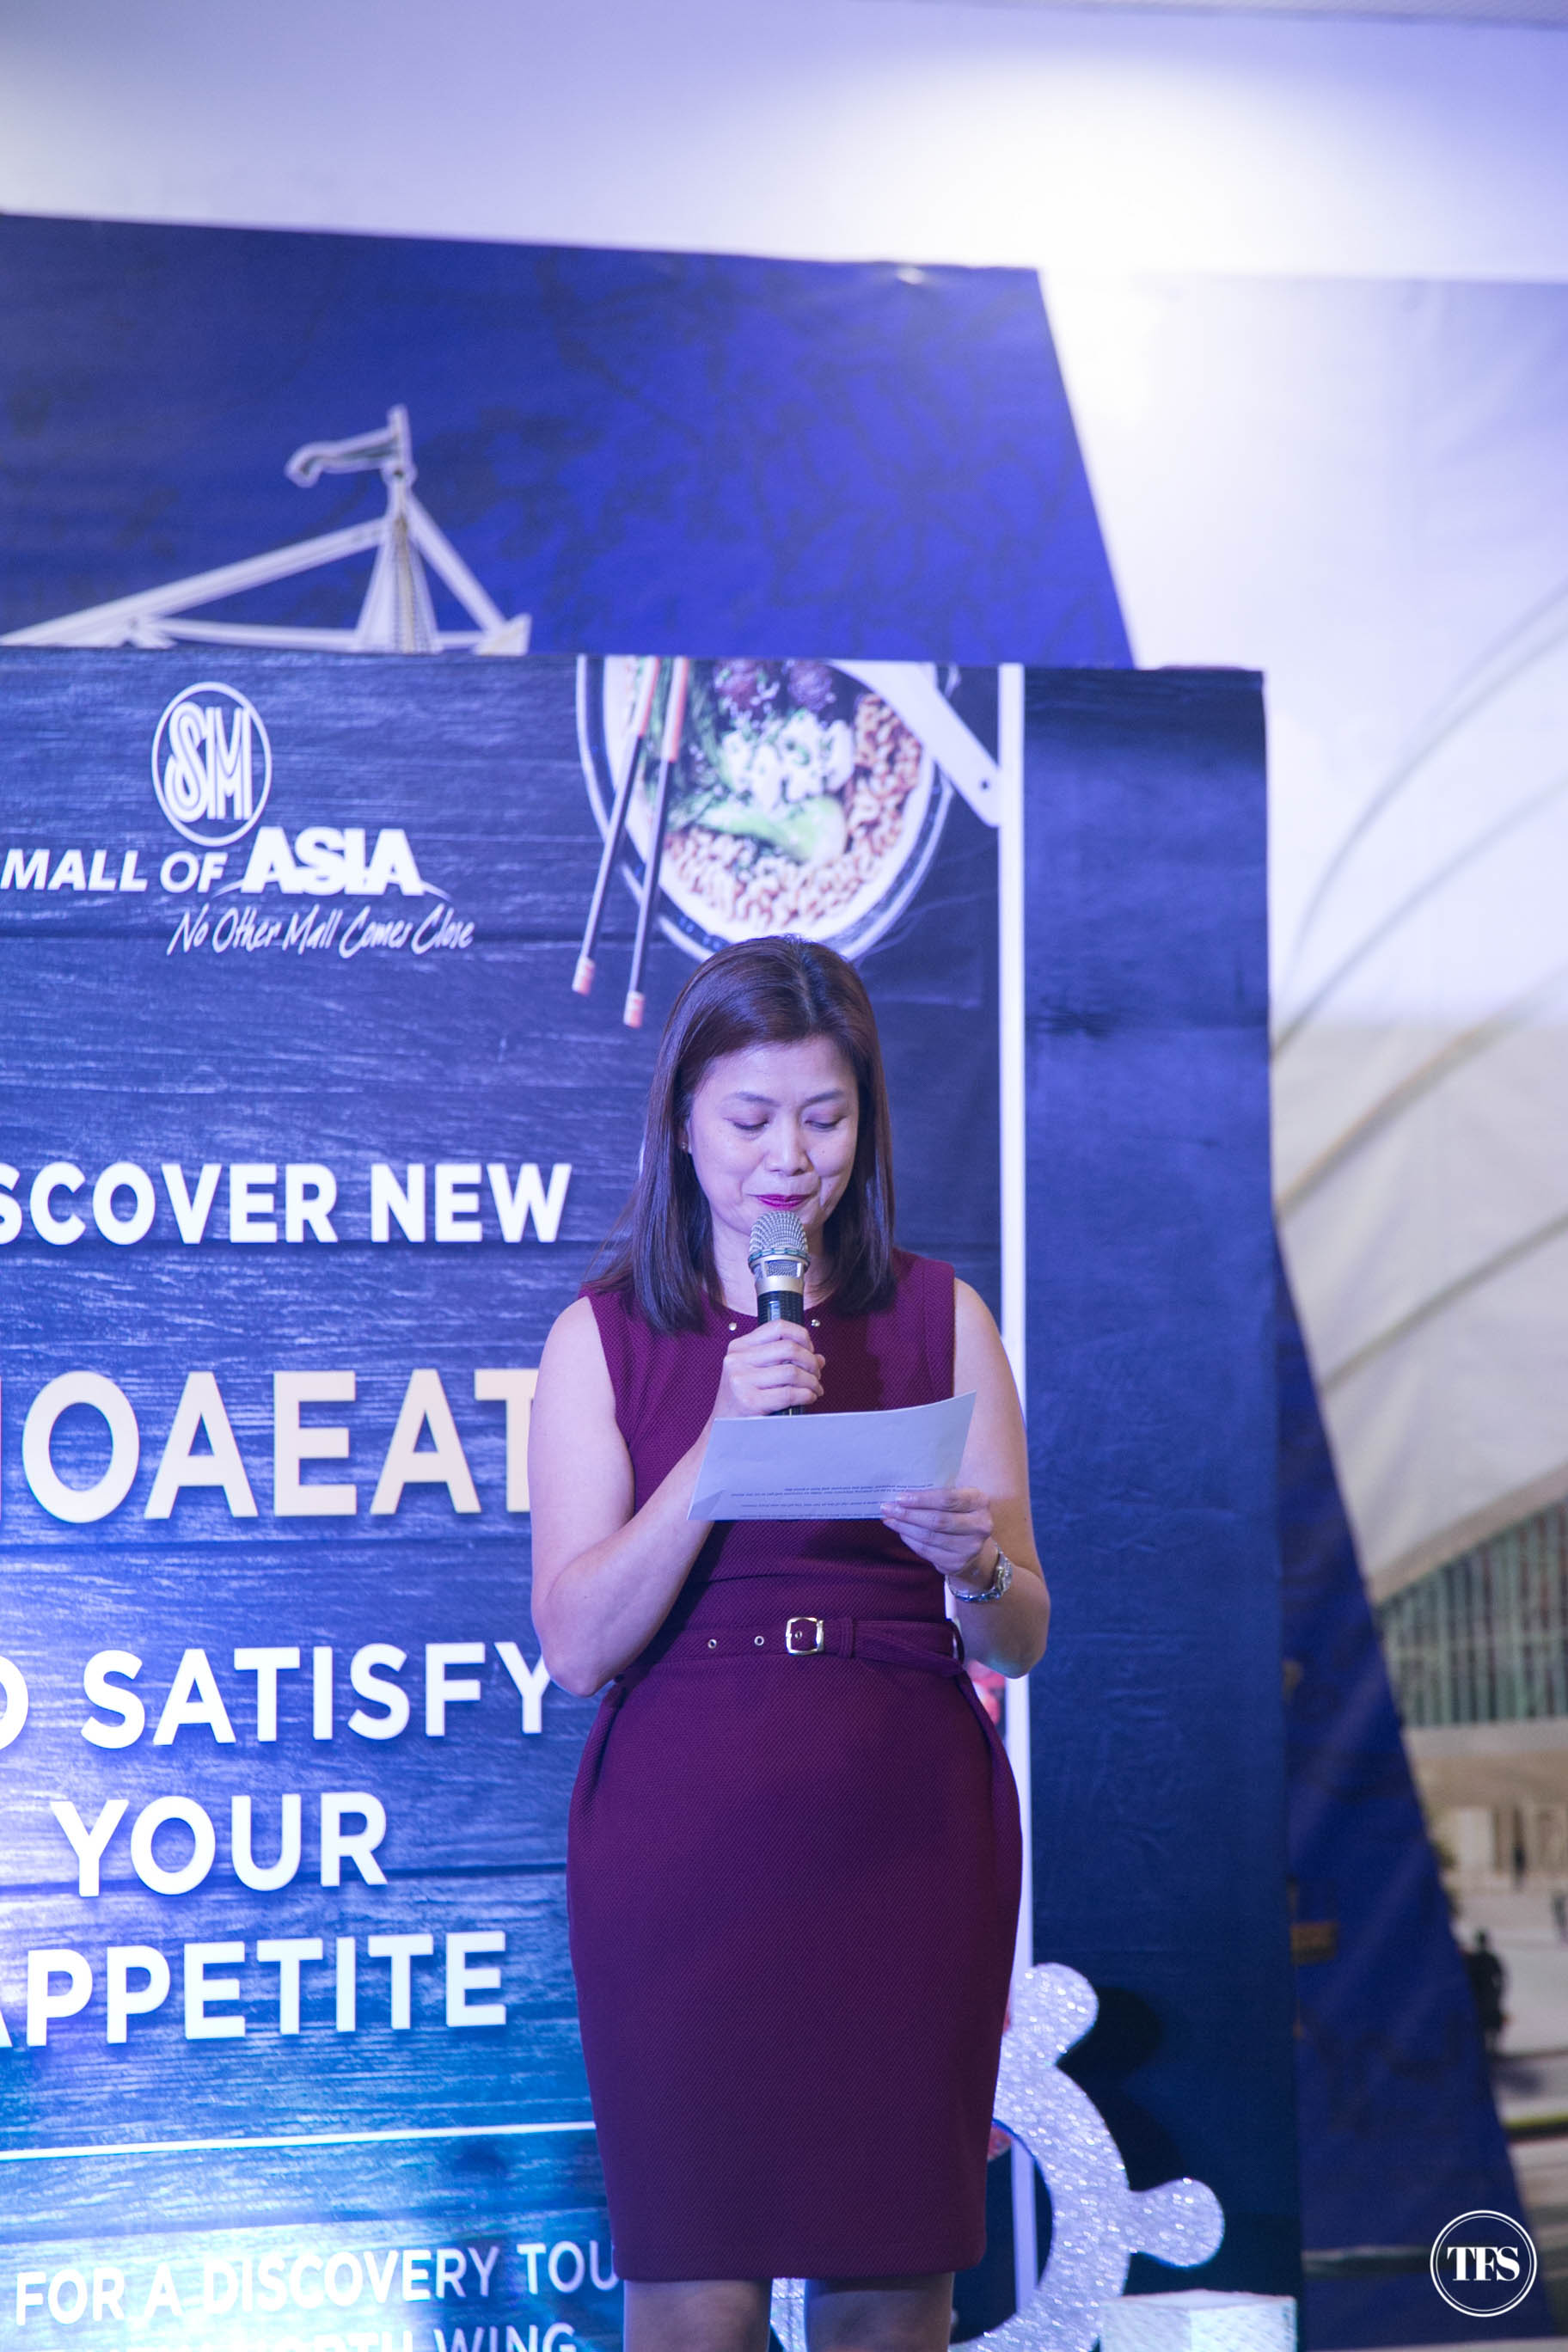 9 Restaurants to Discover at SM Mall of Asia North Wing The Food